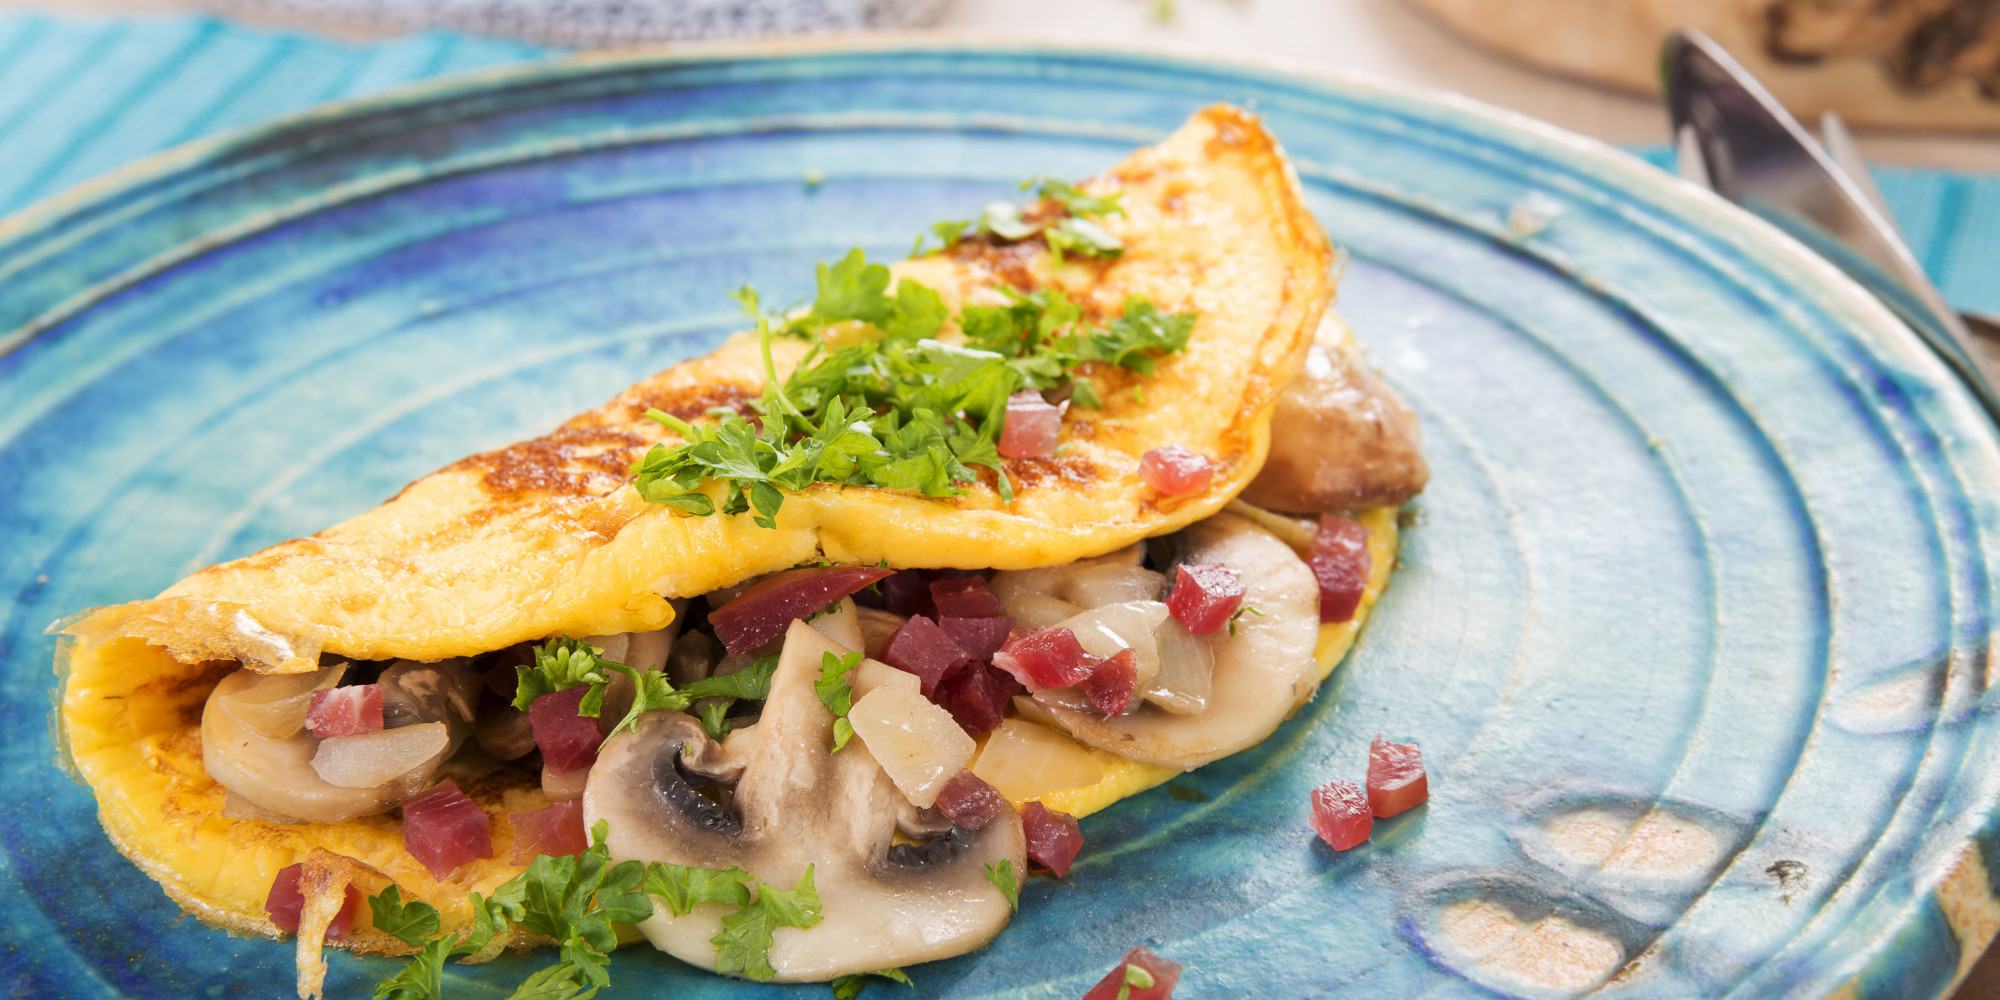 Healthy Breakfast Recipes  13 Healthy Breakfast Ideas Packed With Protein And Low In